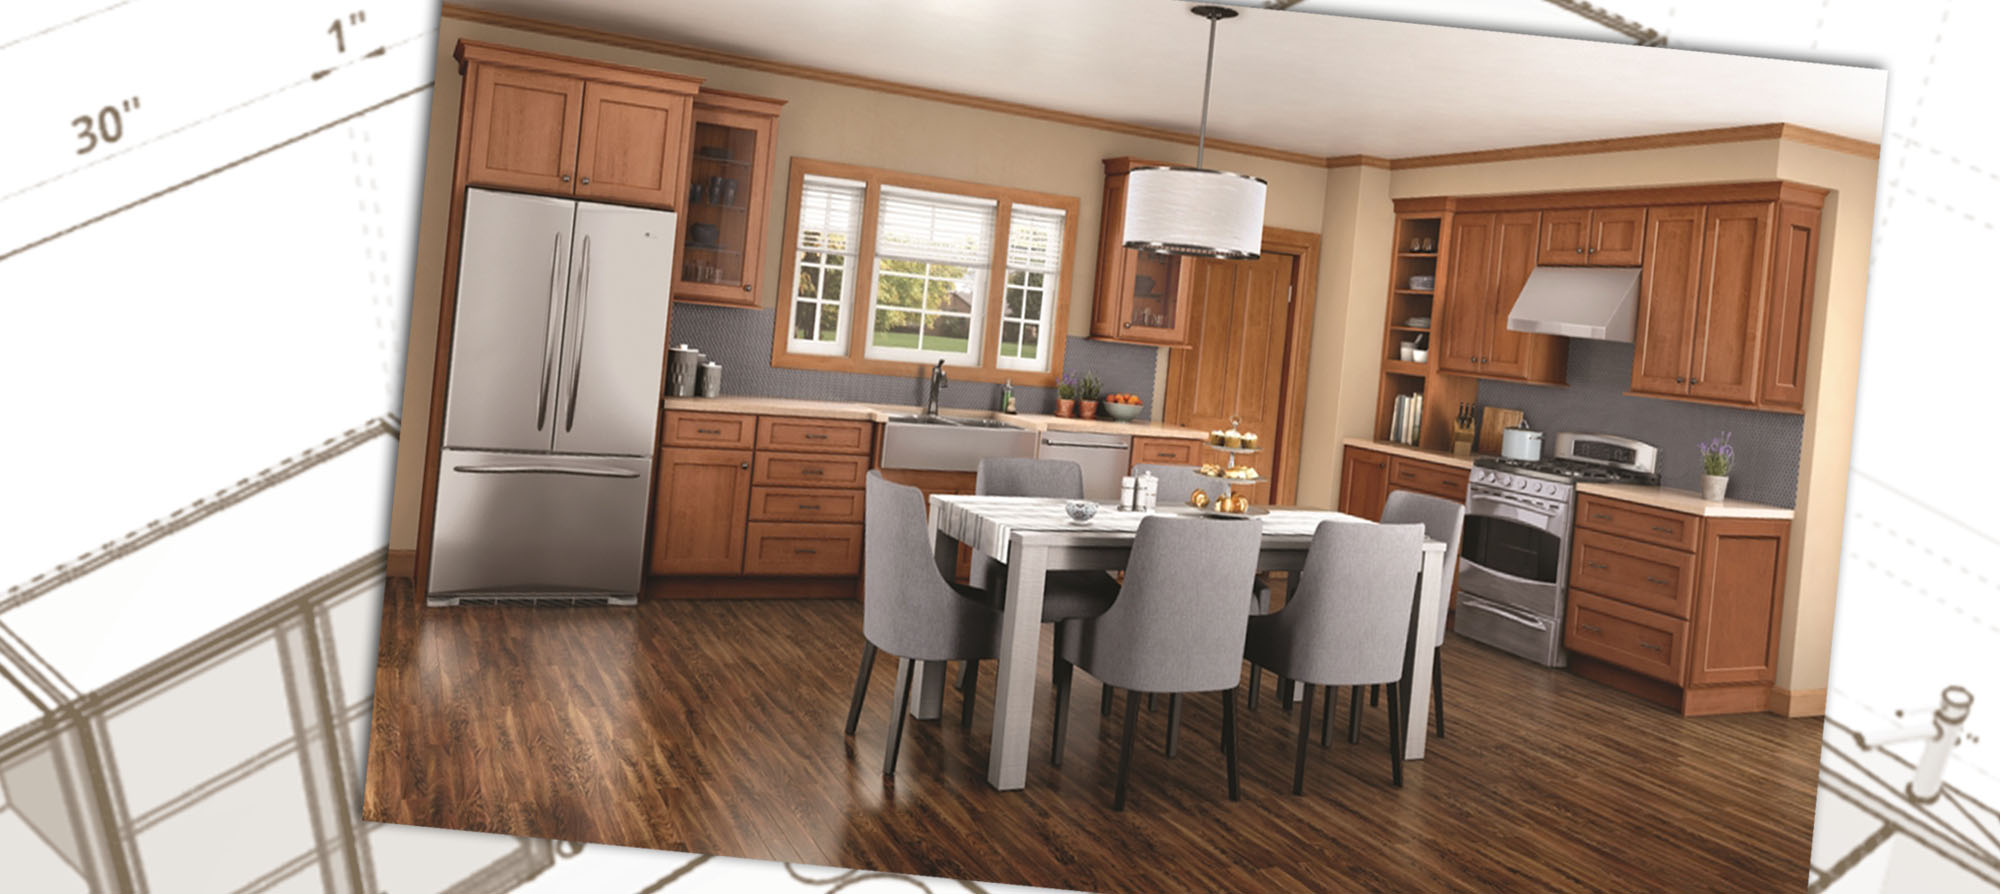 Kitchen Design Room Merillat Kitchen Planner